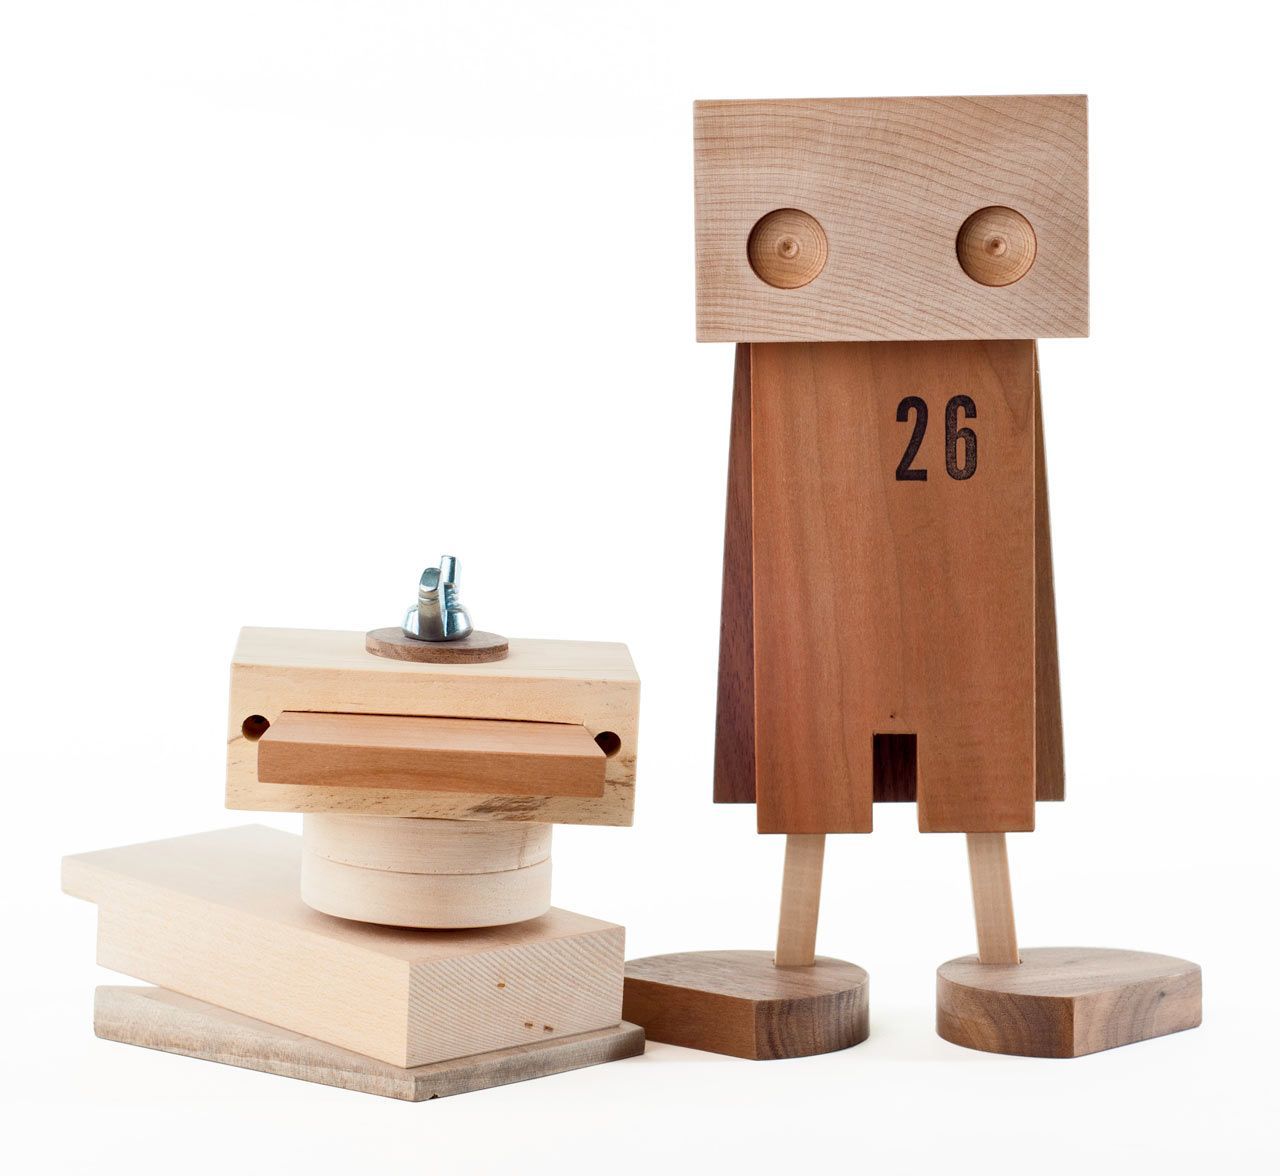 Handmade Wooden Toys Made From Scrap Wood Style Fashion Wood